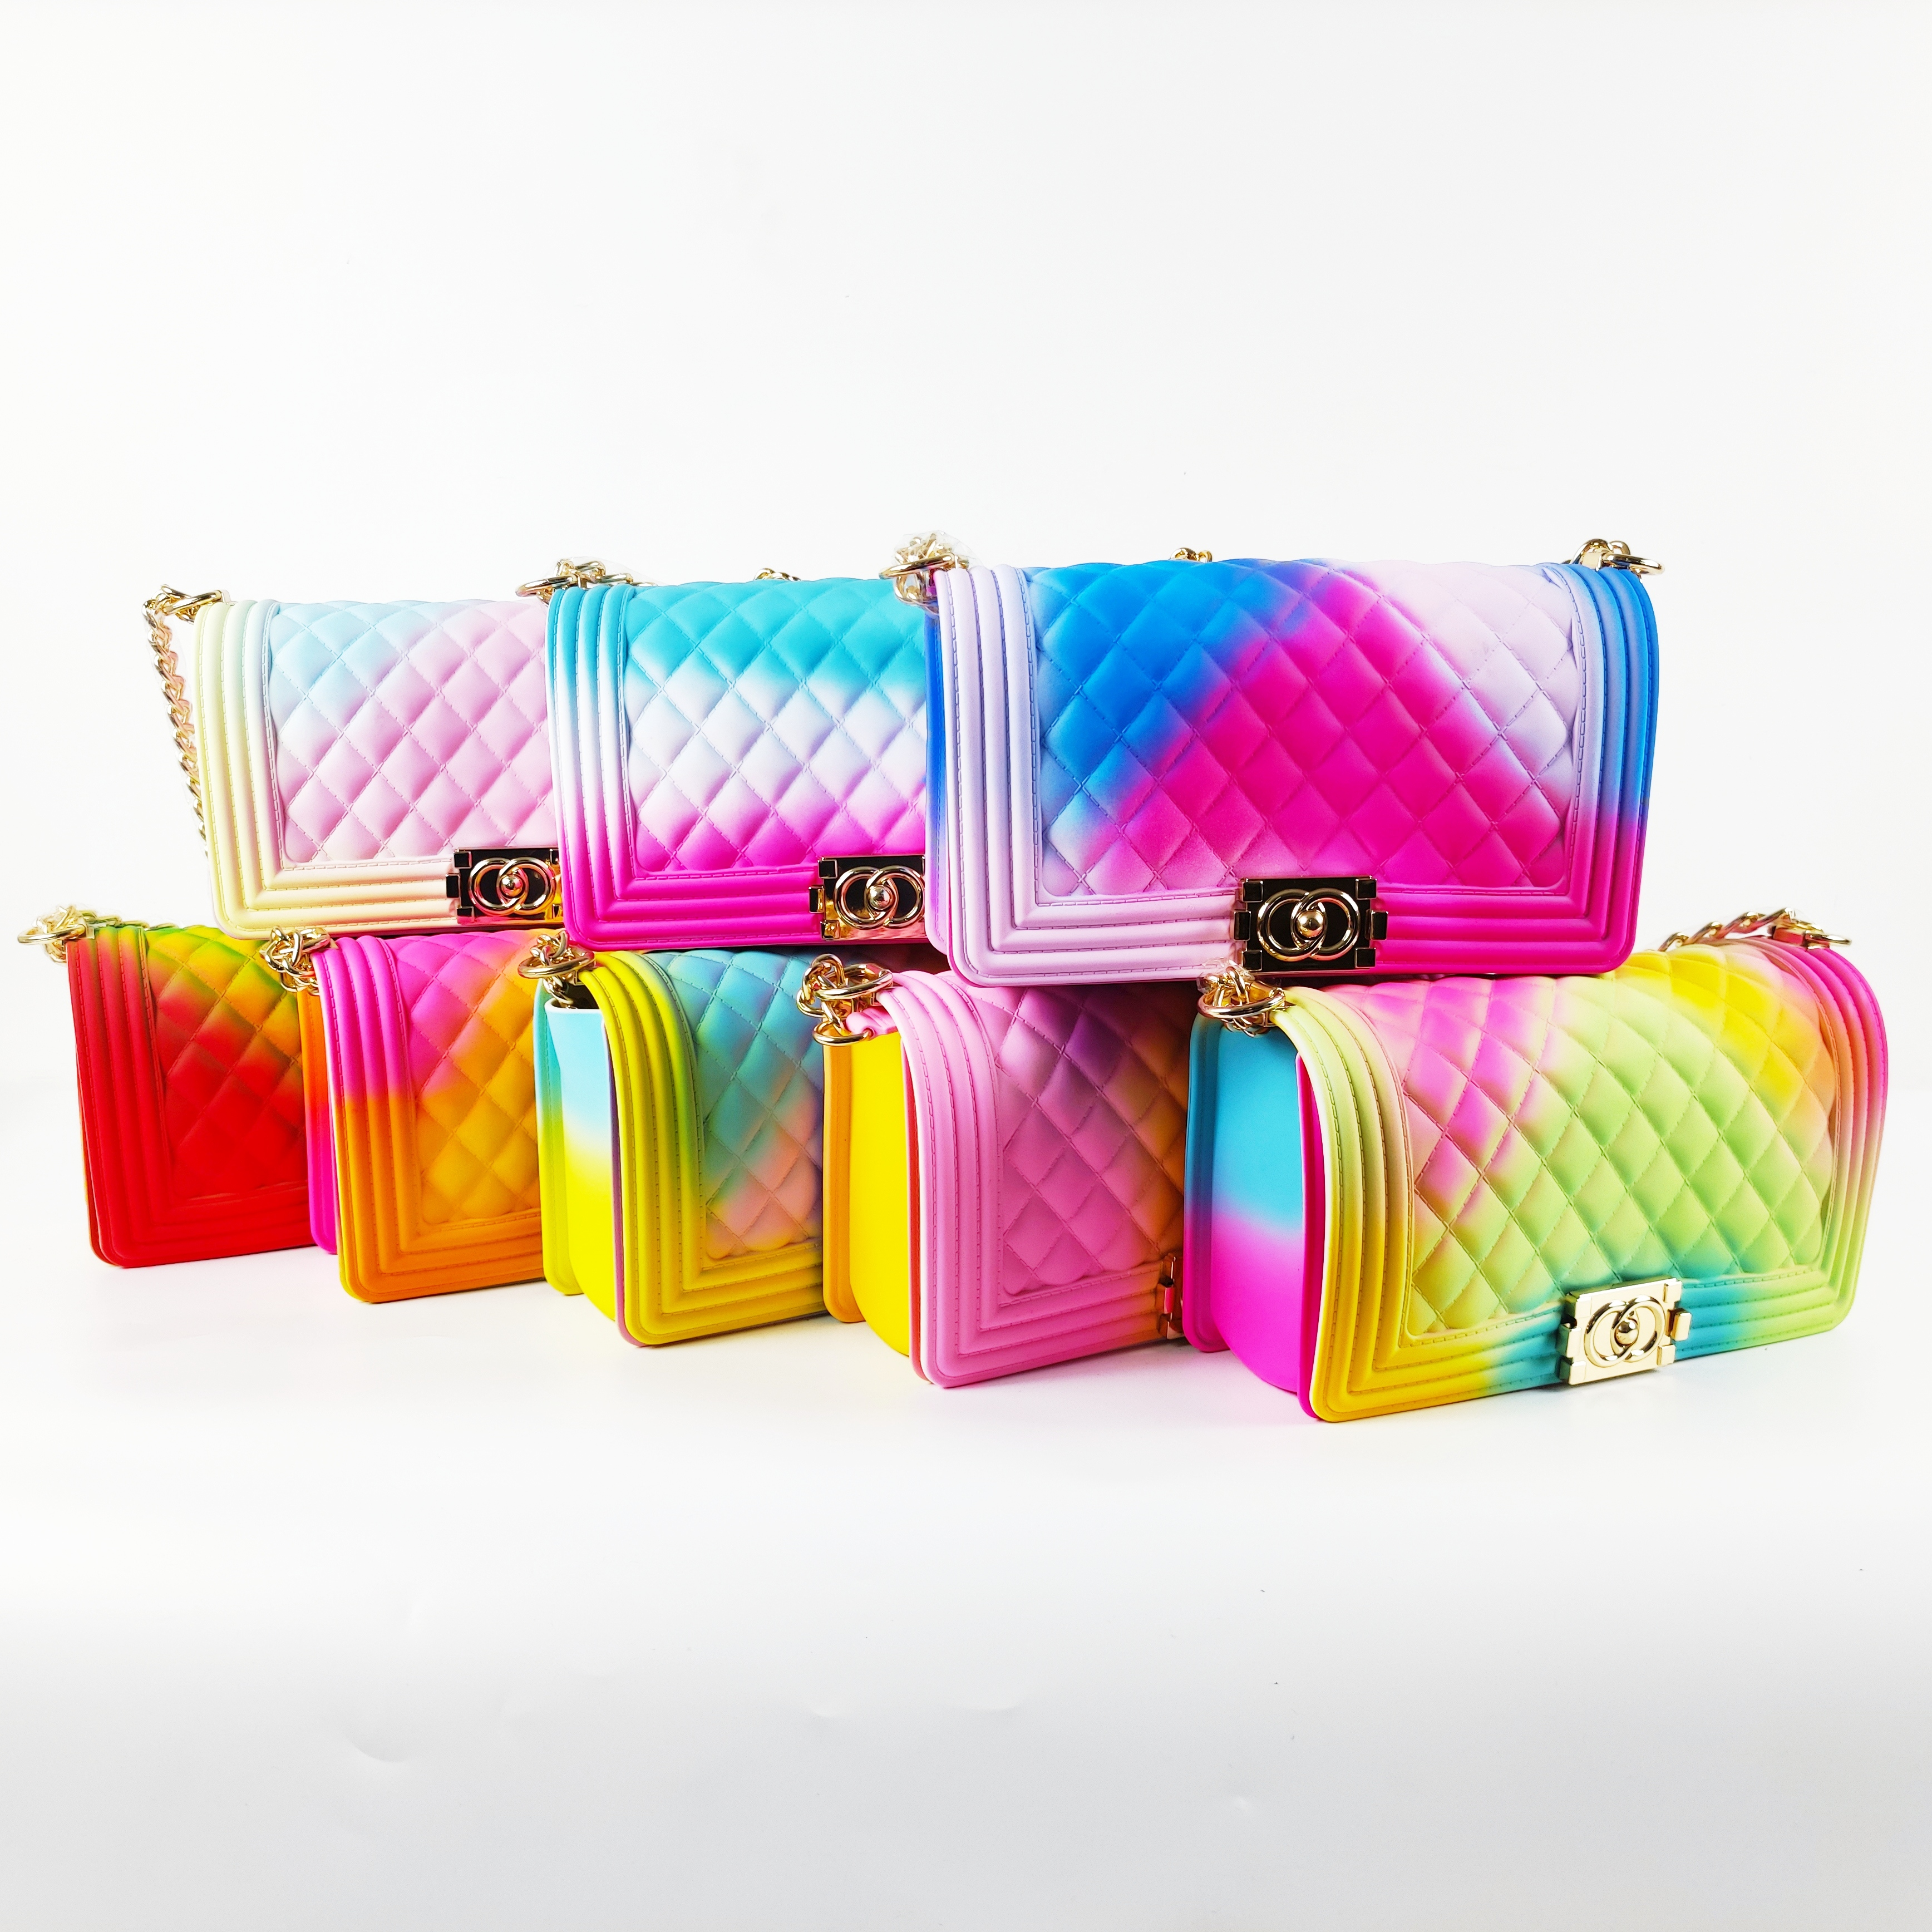 TS9021 Amazon hot sell beach fashion rainbow shoulder candy handbags summer colorful Jelly PVC bag jelly bags for women